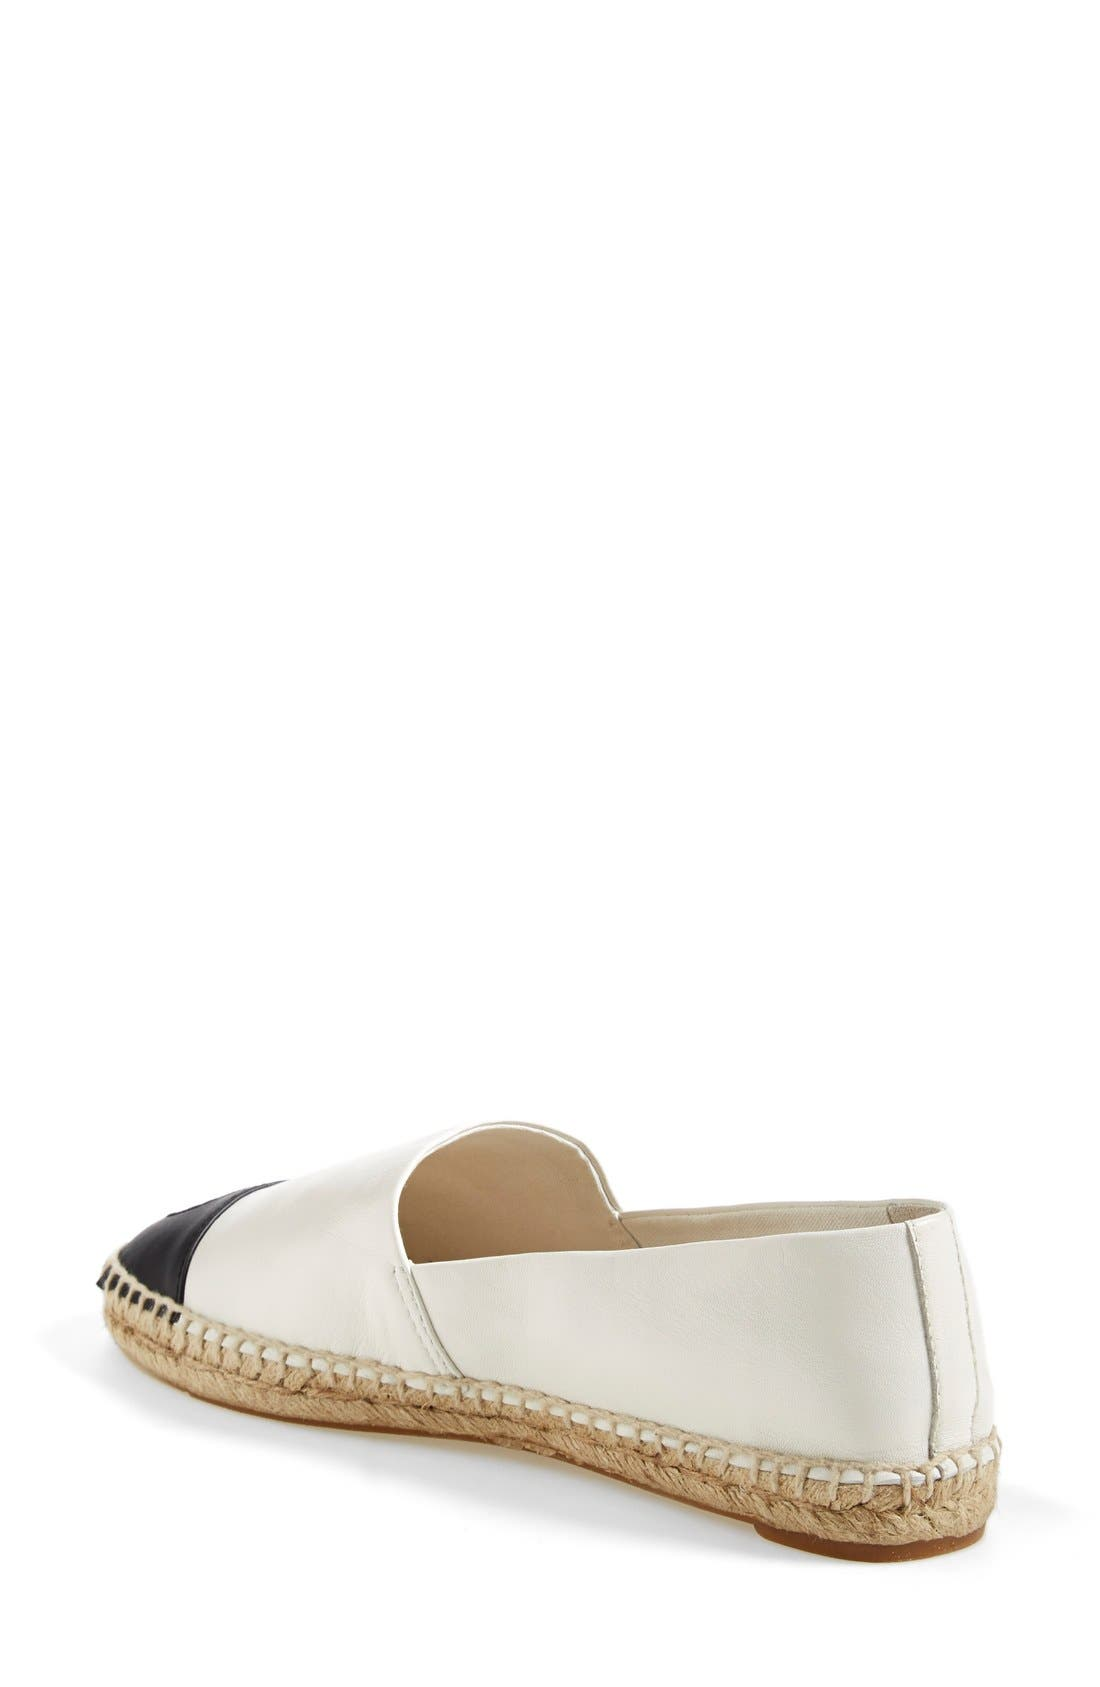 Alternate Image 2  - Tory Burch Colorblock Espadrille Flat (Women)